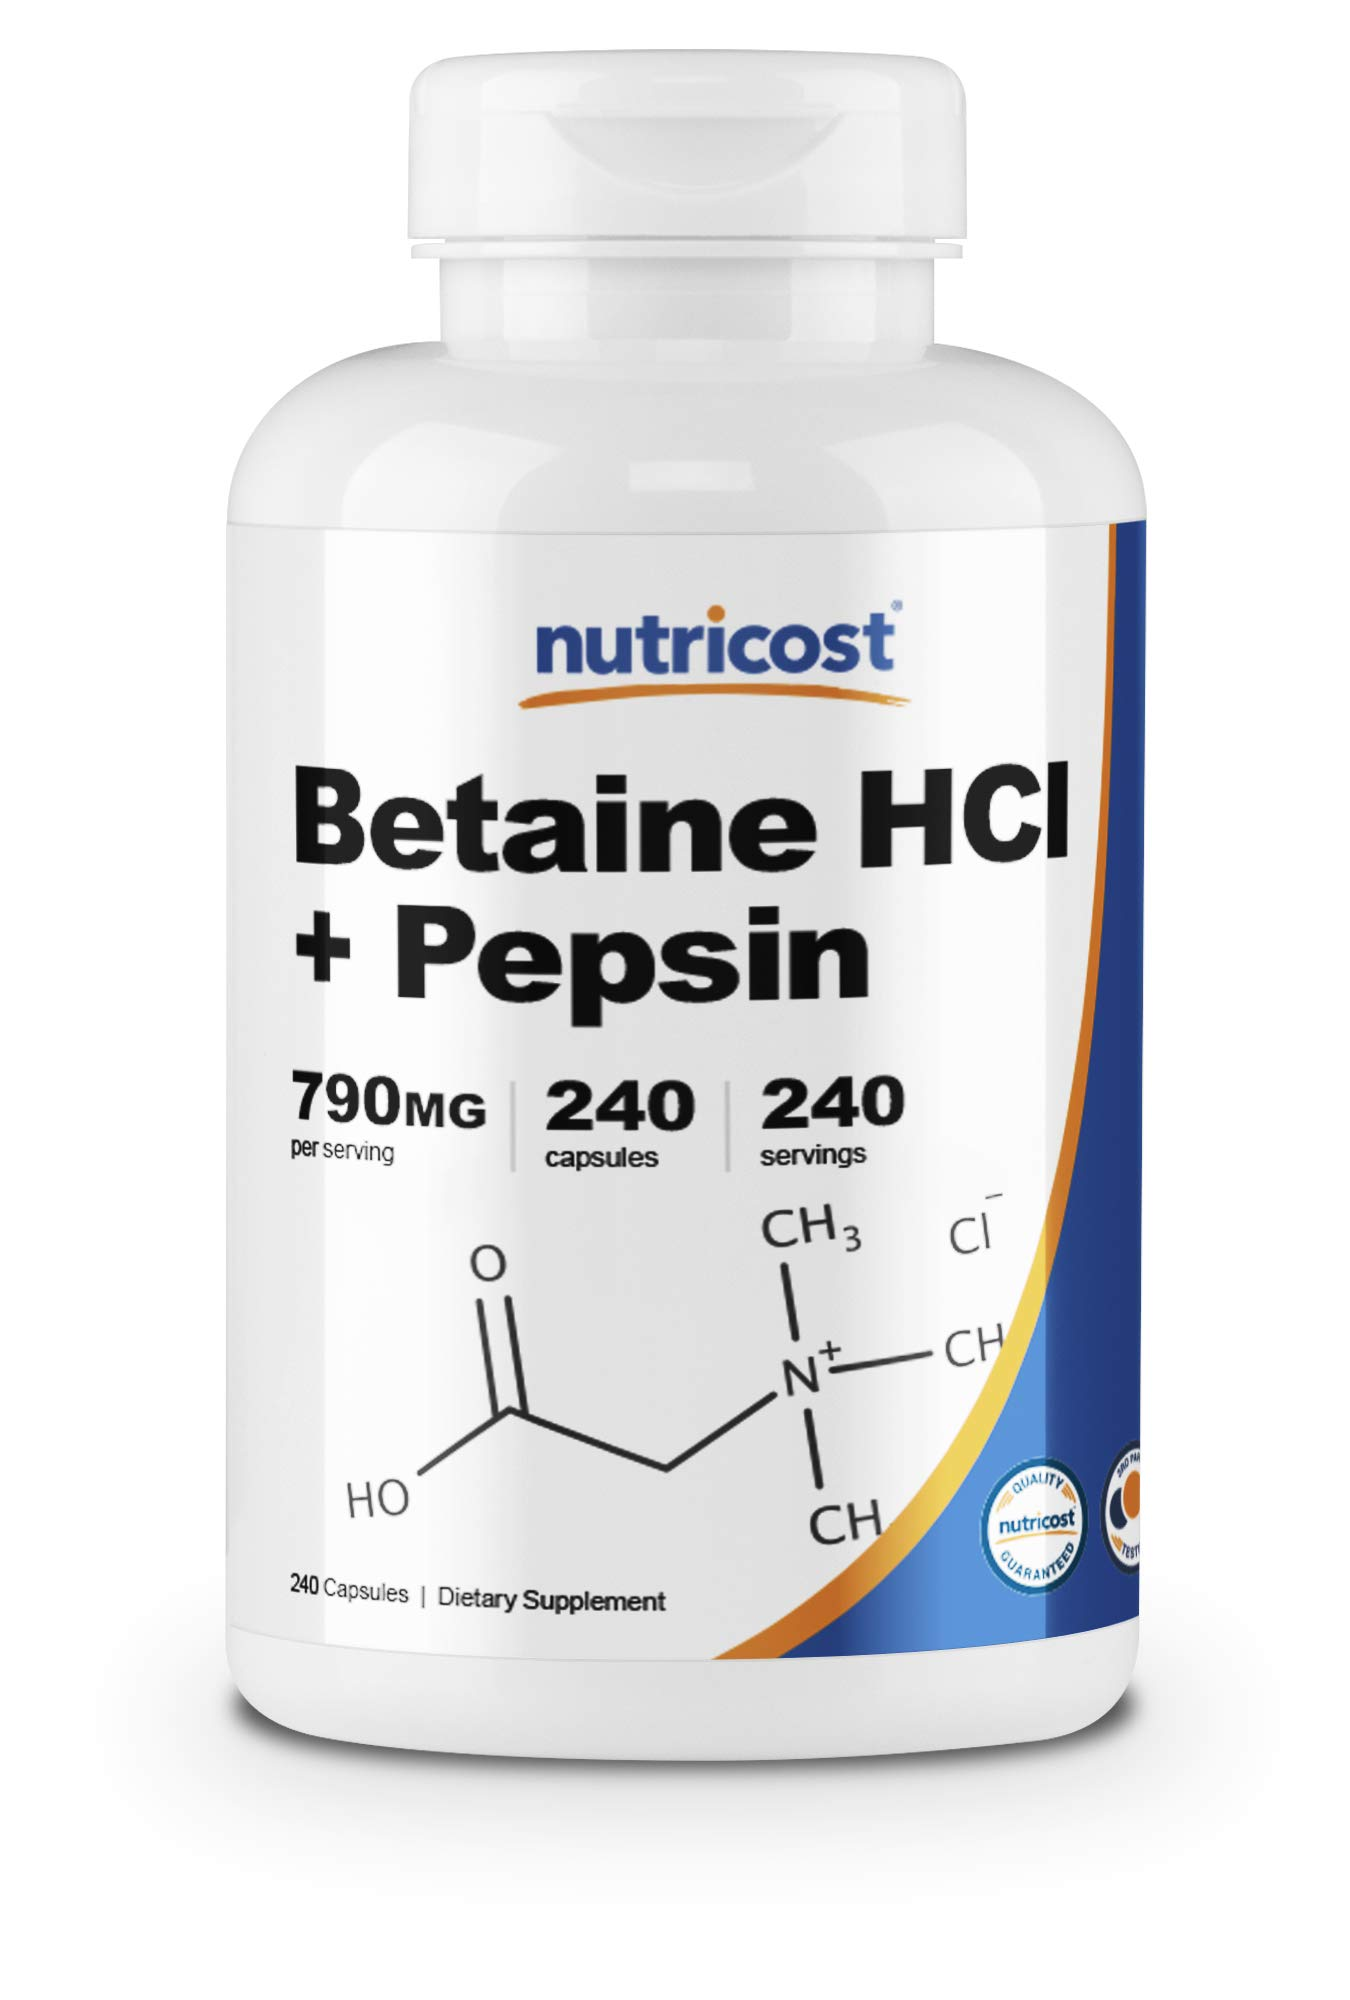 Nutricost Betaine HCl + Pepsin 790mg, 240 Capsules - Gluten Free & Non-GMO by Nutricost